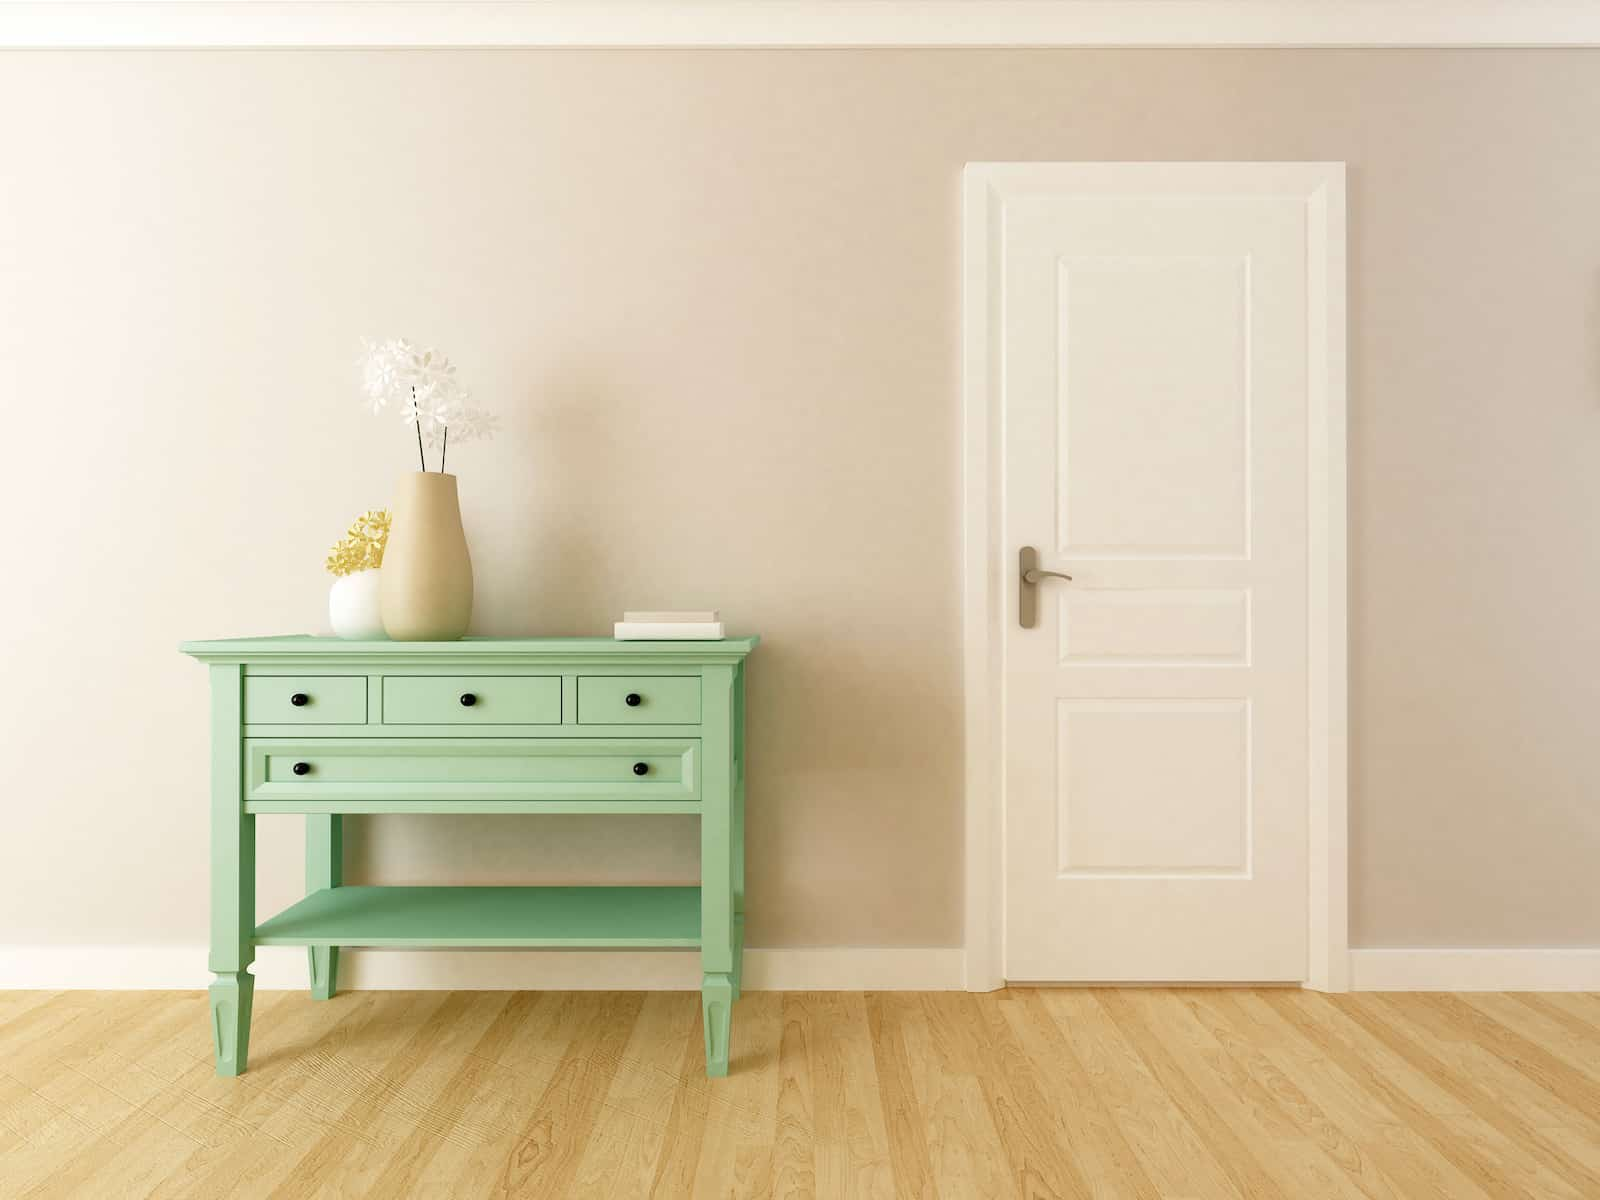 Top 7 Best Chalk Paint for Furniture in 2021